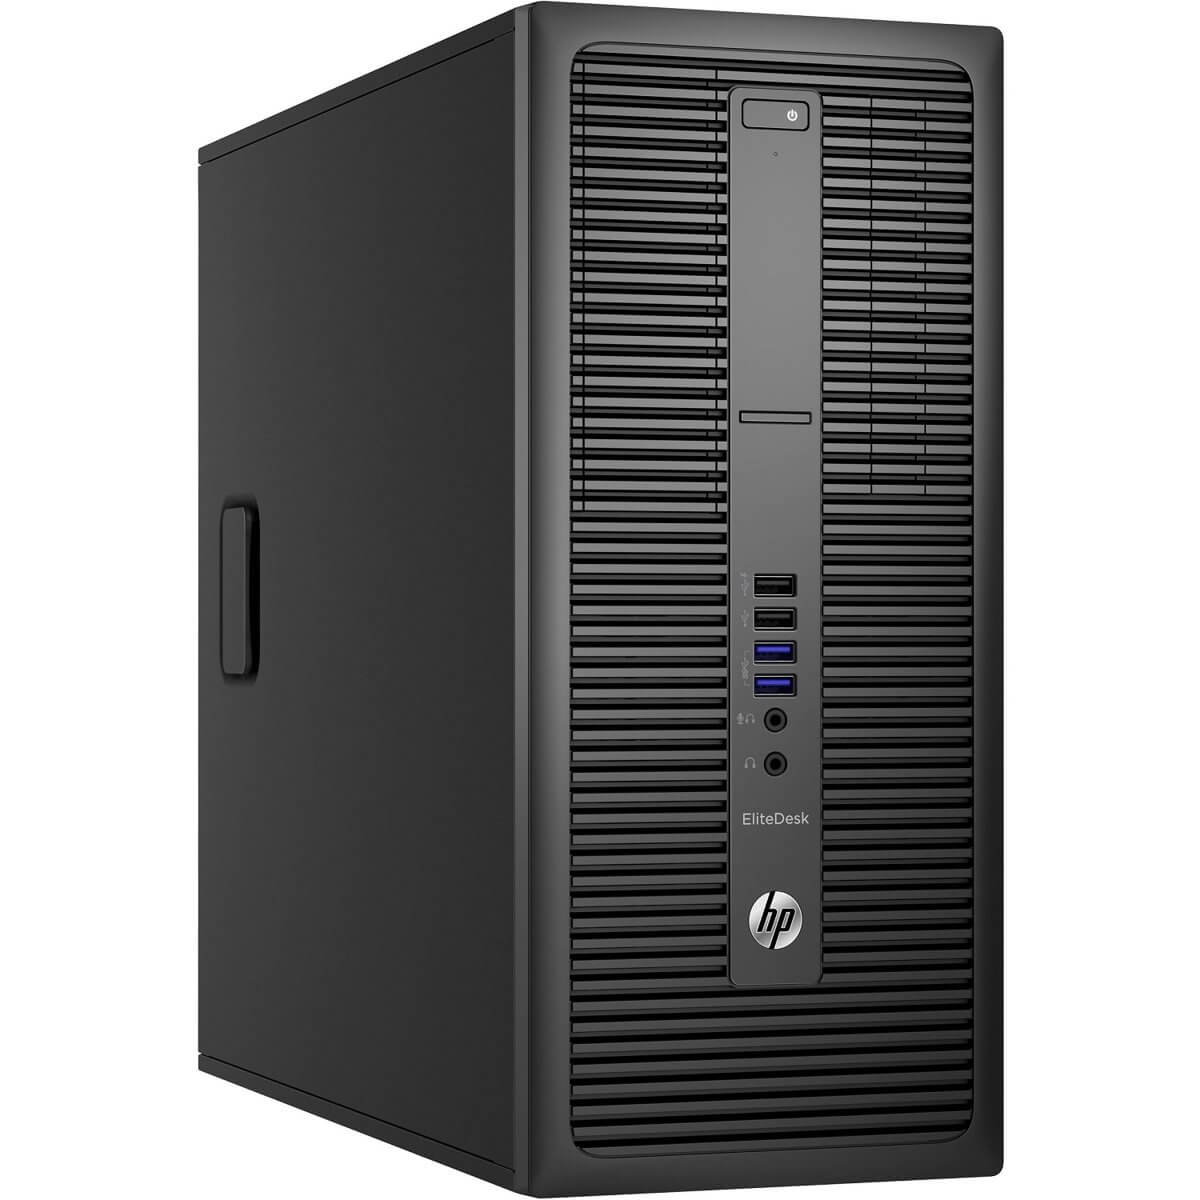 HP ELITEDESK 800 G2 TOWER I5-6400 2.7 / 16384 MB DDR4 / 256 GB SSD + 500 GB / WINDOWS 10 PRO